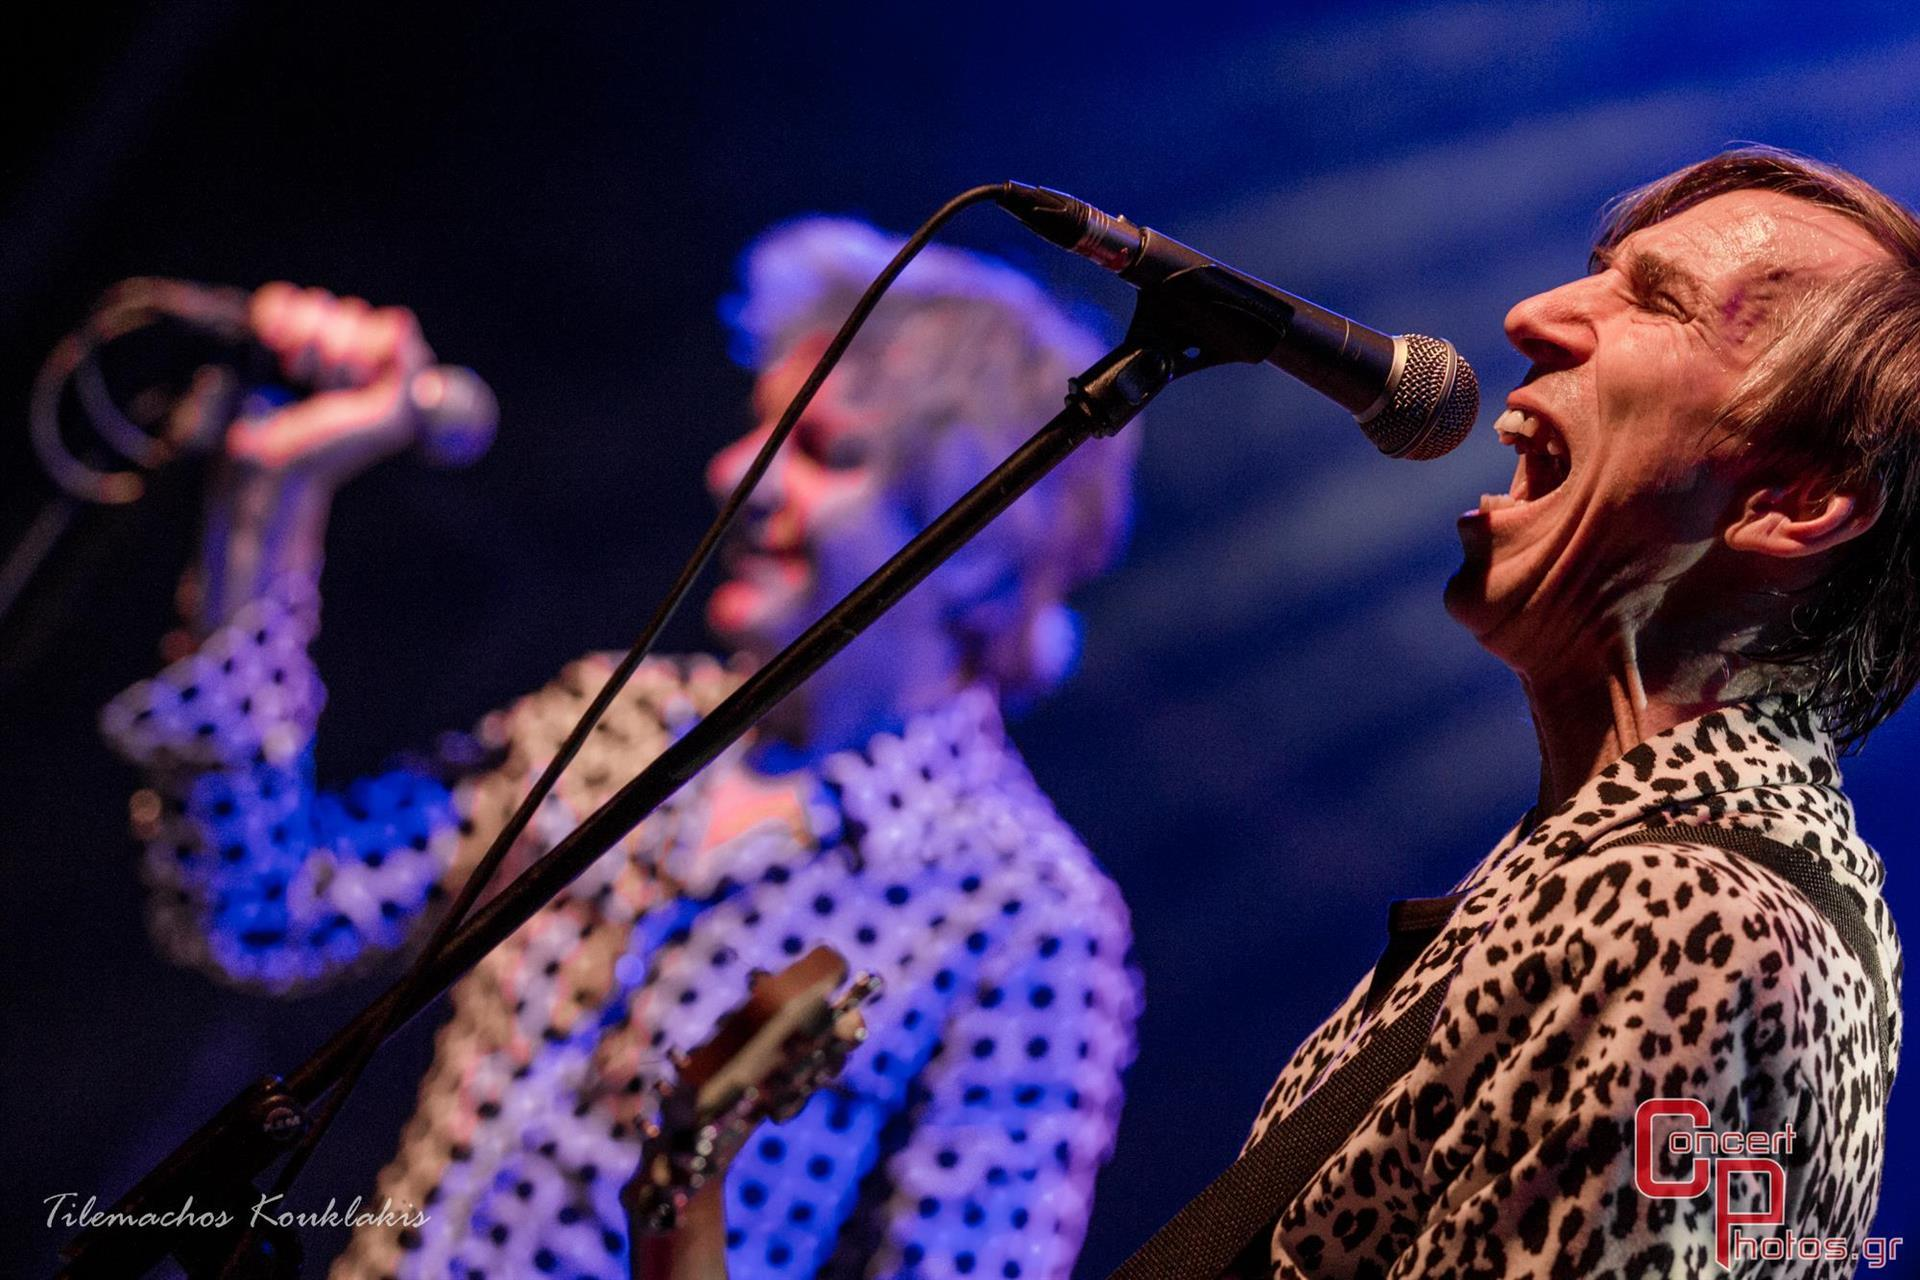 The Fleshtones - Dirty Fuse - The Statycs-The Fleshtones - Dirty Fuse - The Statycs photographer:  - IMG_8303